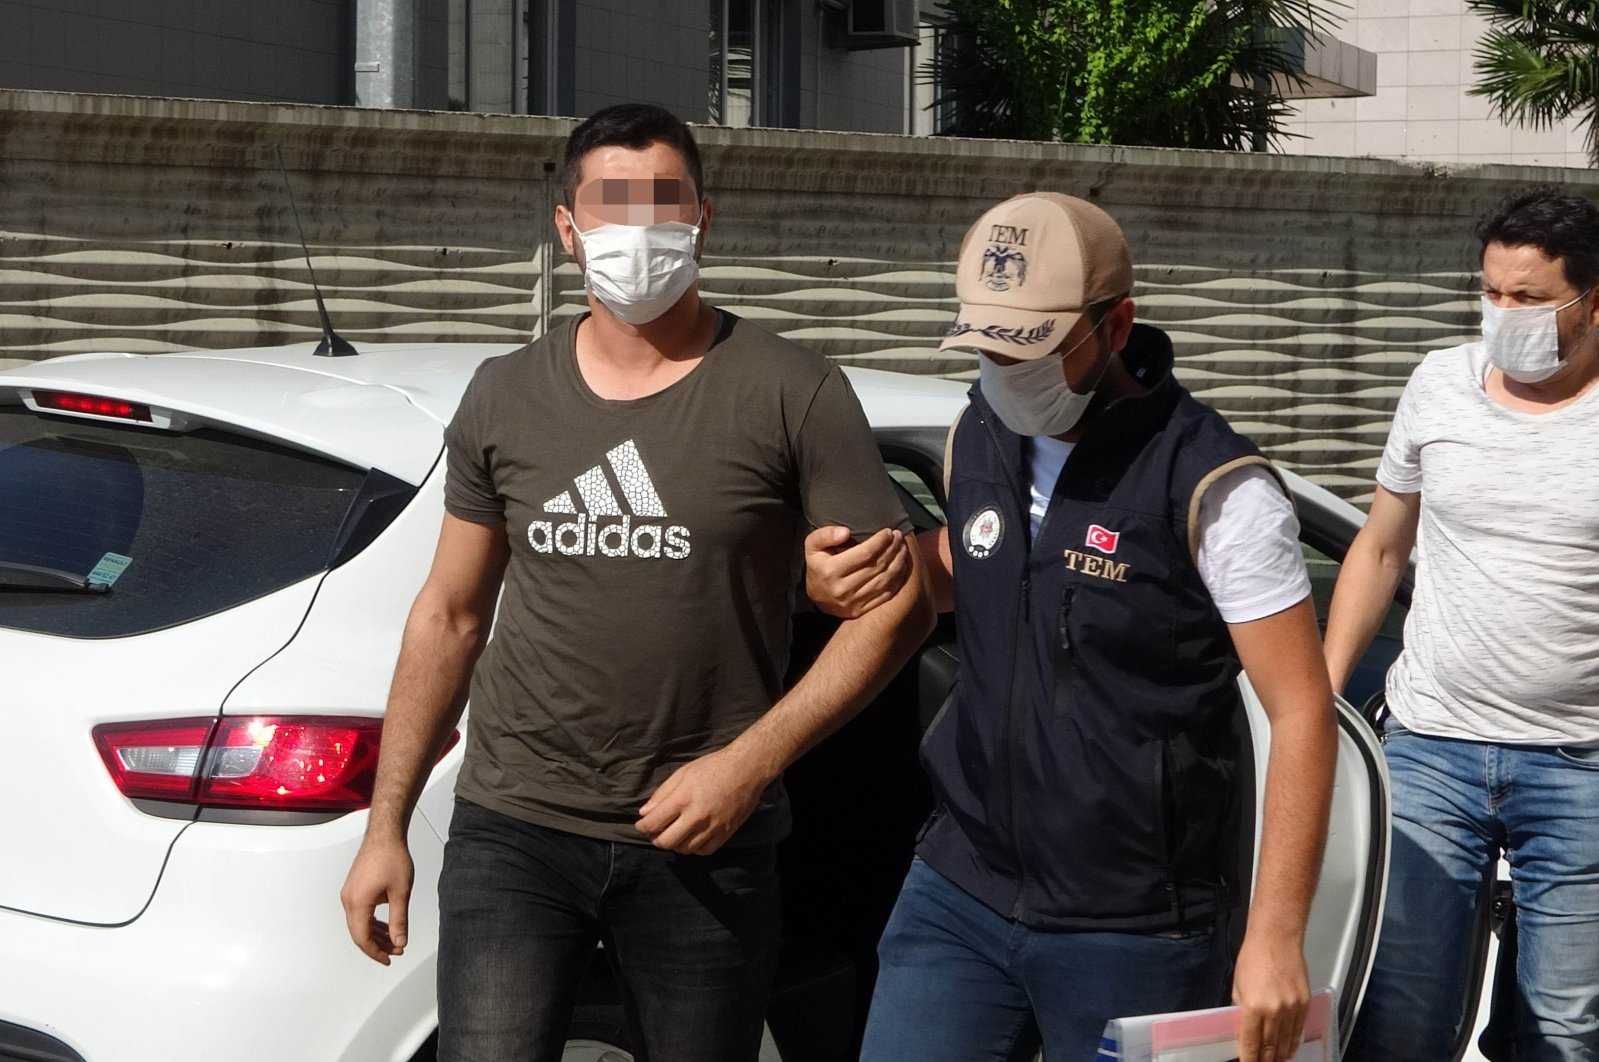 Police escort a FETÖ suspect to the police station after his capture, in Samsun, Turkey, July 14, 2020. (IHA Photo)